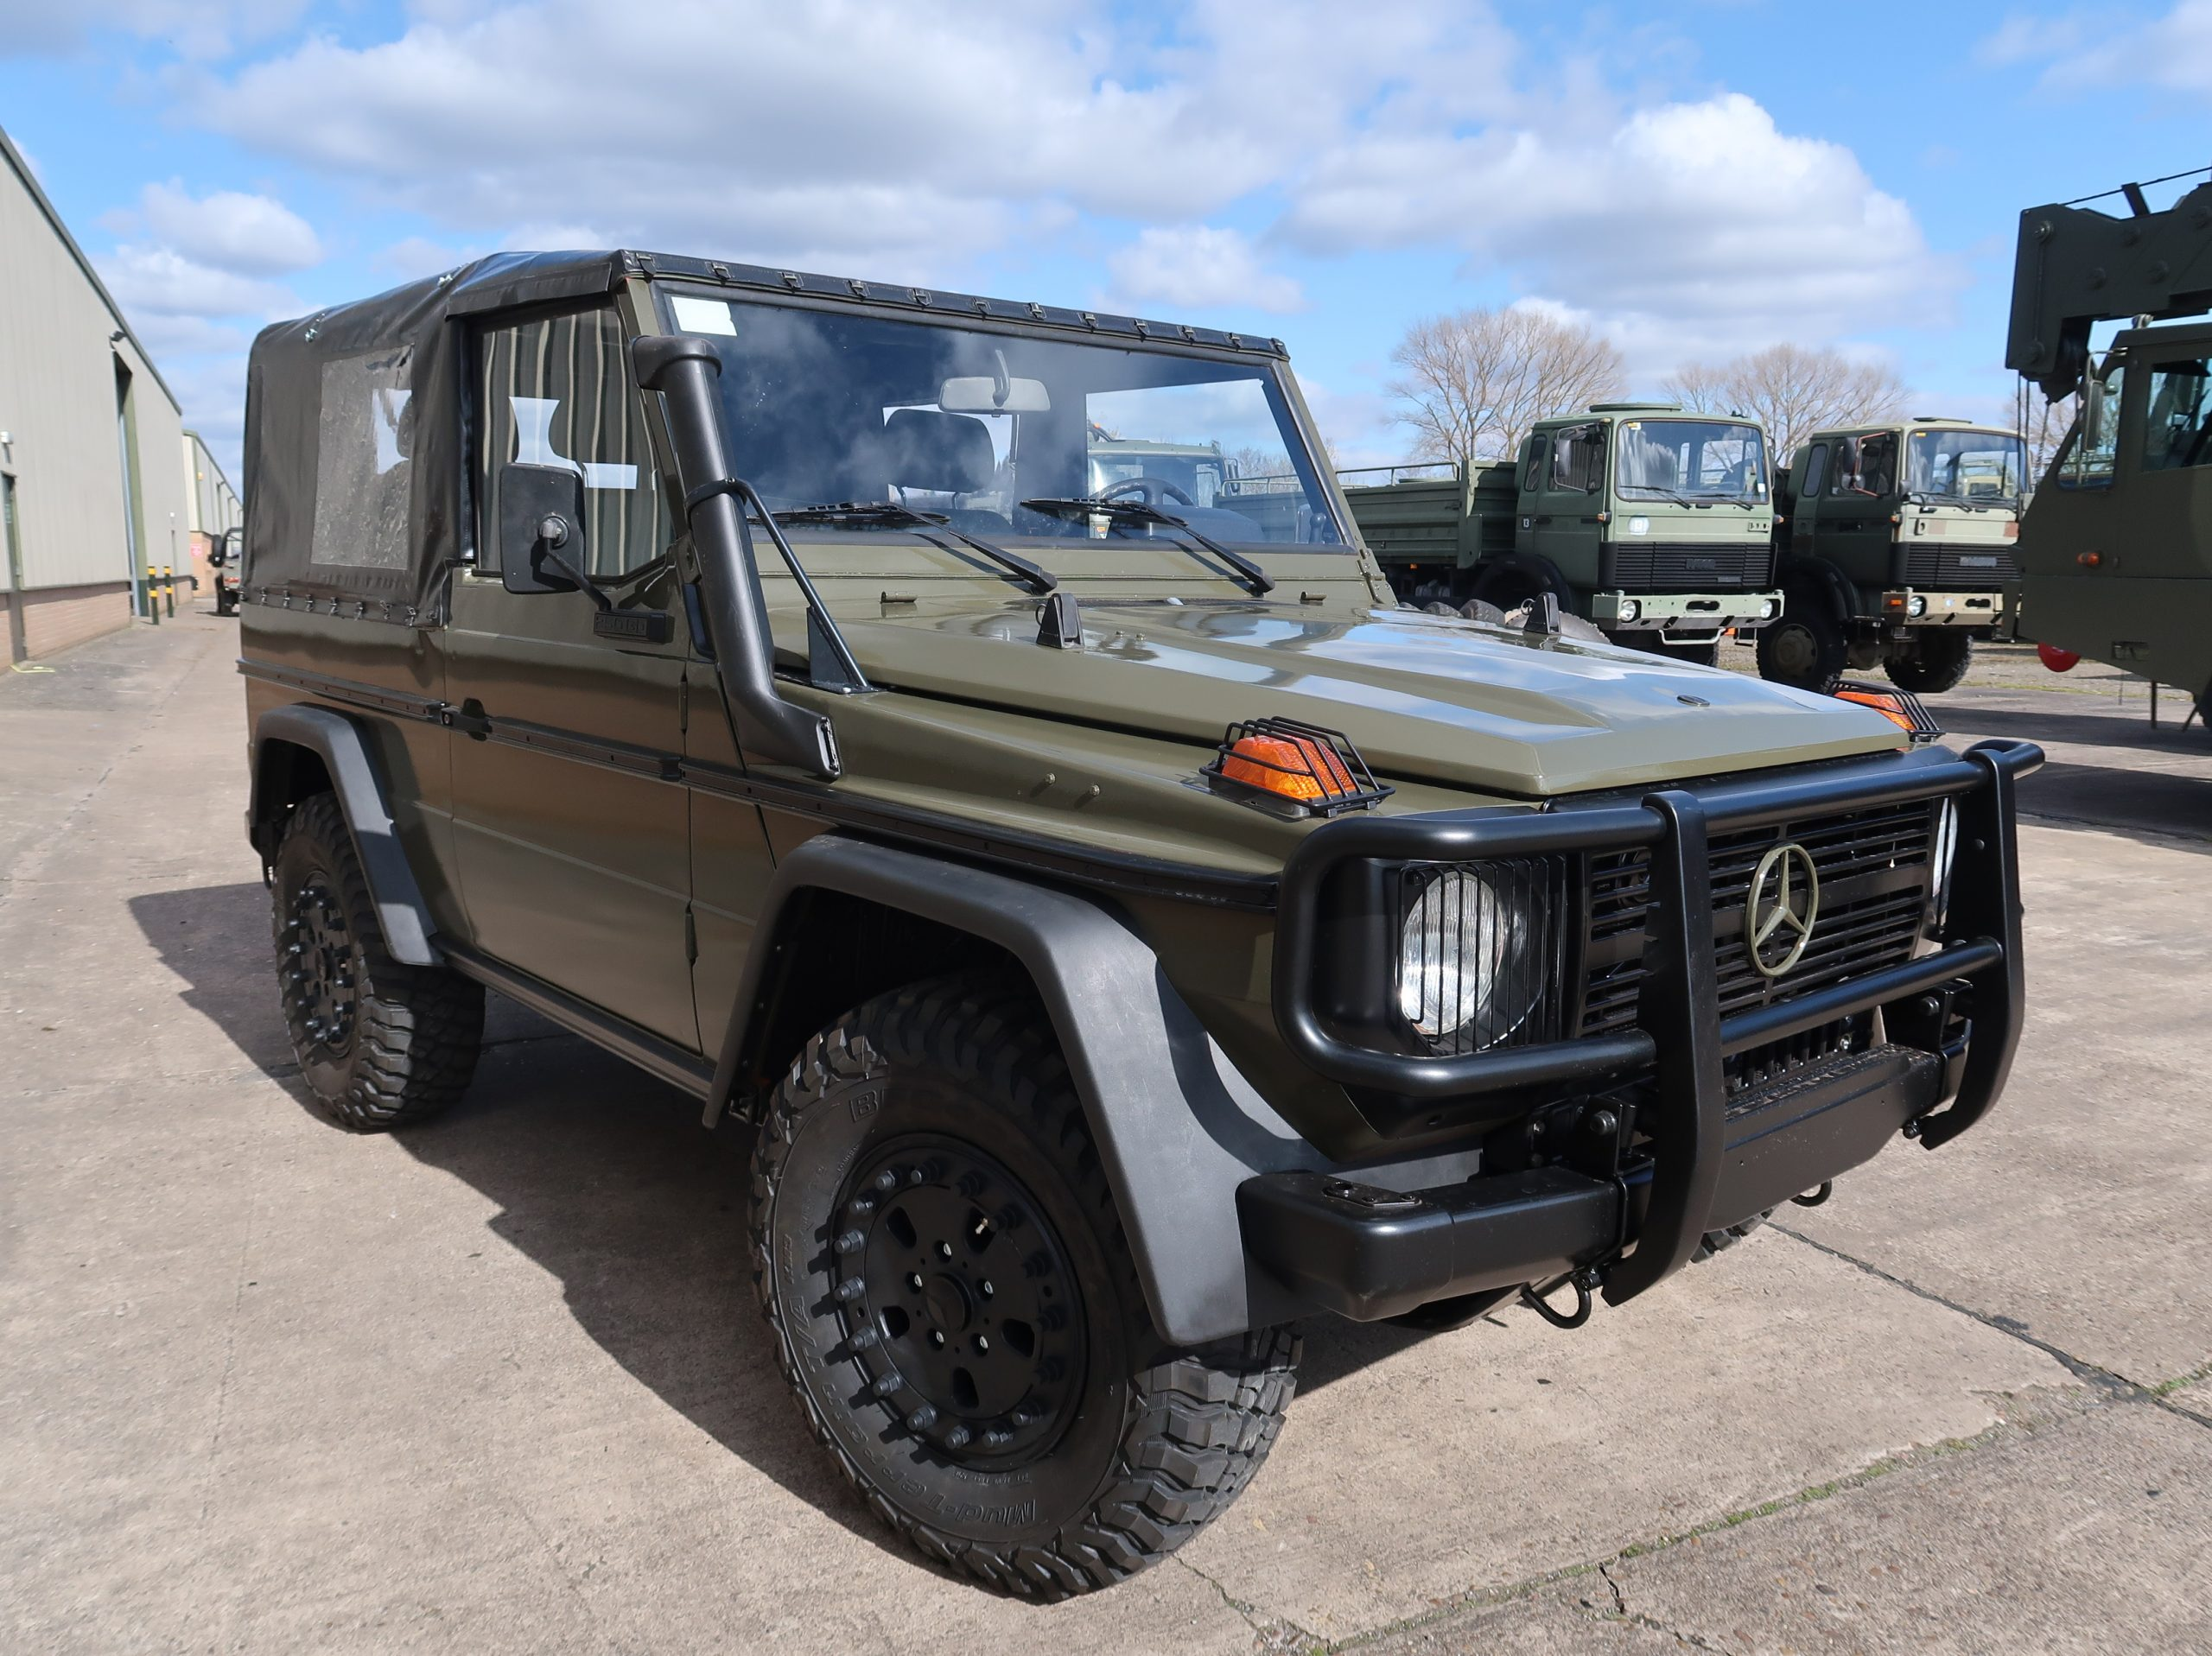 Mercedes G Wagon 250 Wolf lhd 4X4 for sale | military vehicles